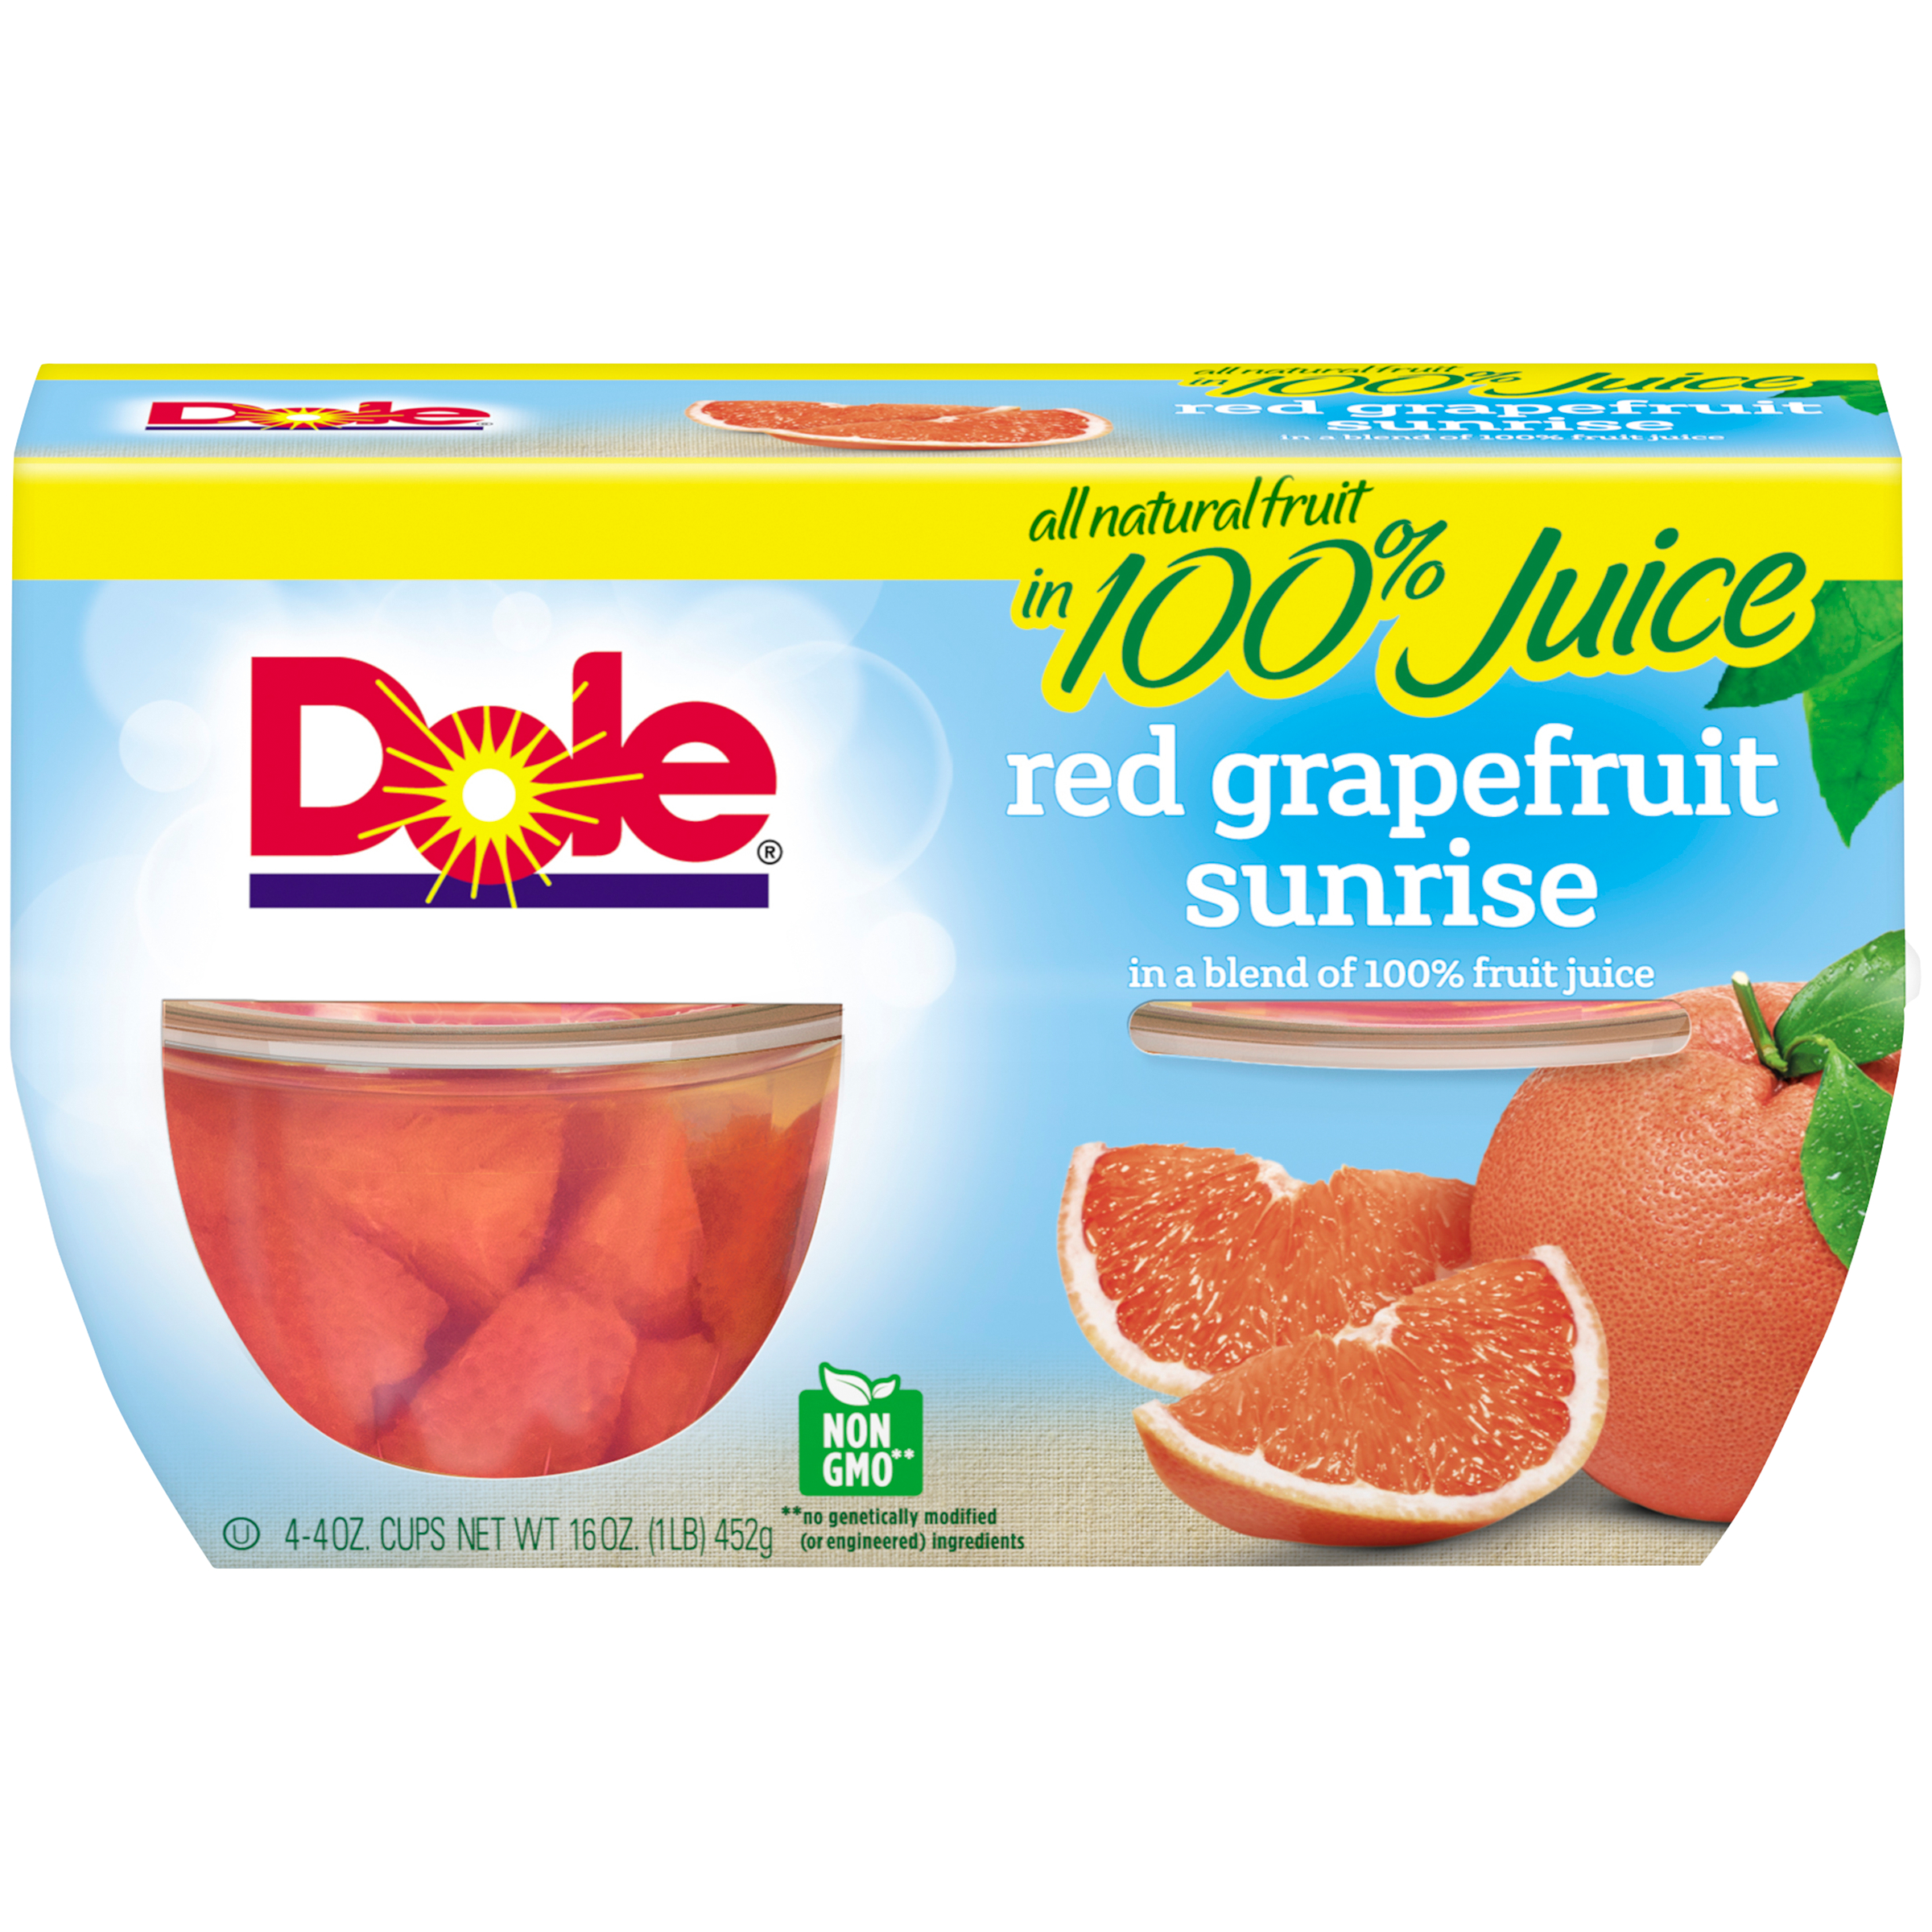 Dole Fruit Bowls, Red Grapefruit Sunrise in a Blend of 100% Fruit Juice, 4 Ounce (4 Cups)